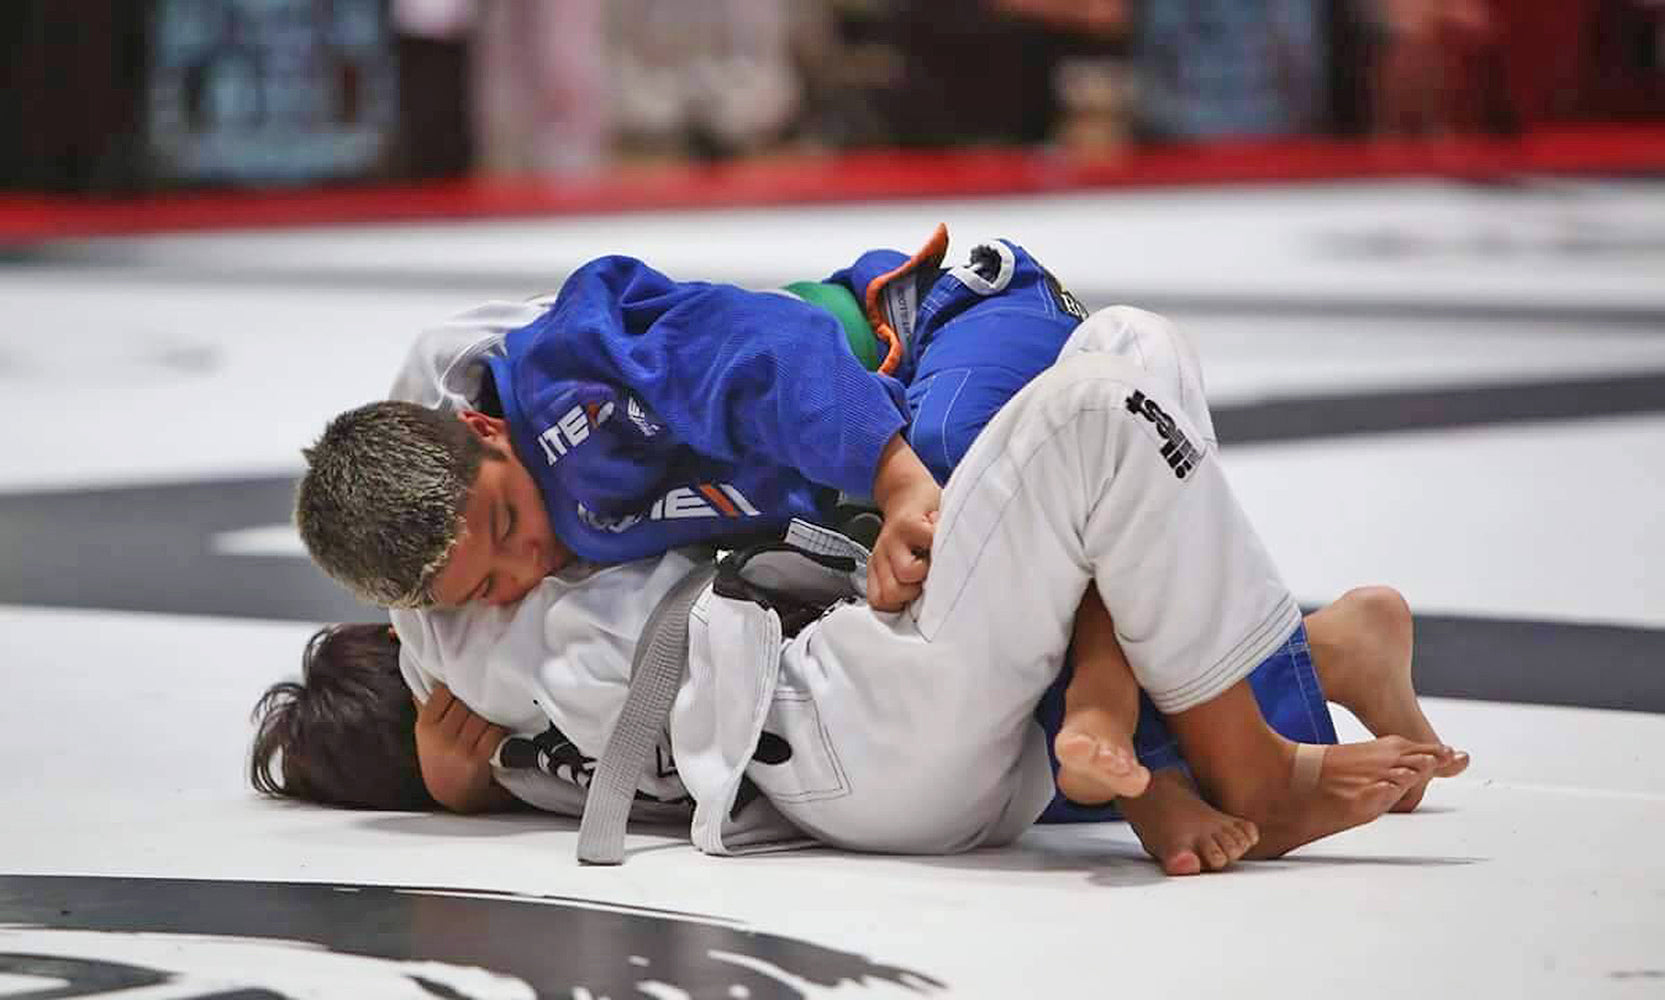 Elite Sports Team Elite Bjj Fighter Gabriel Garcia (Martelo)  Image2